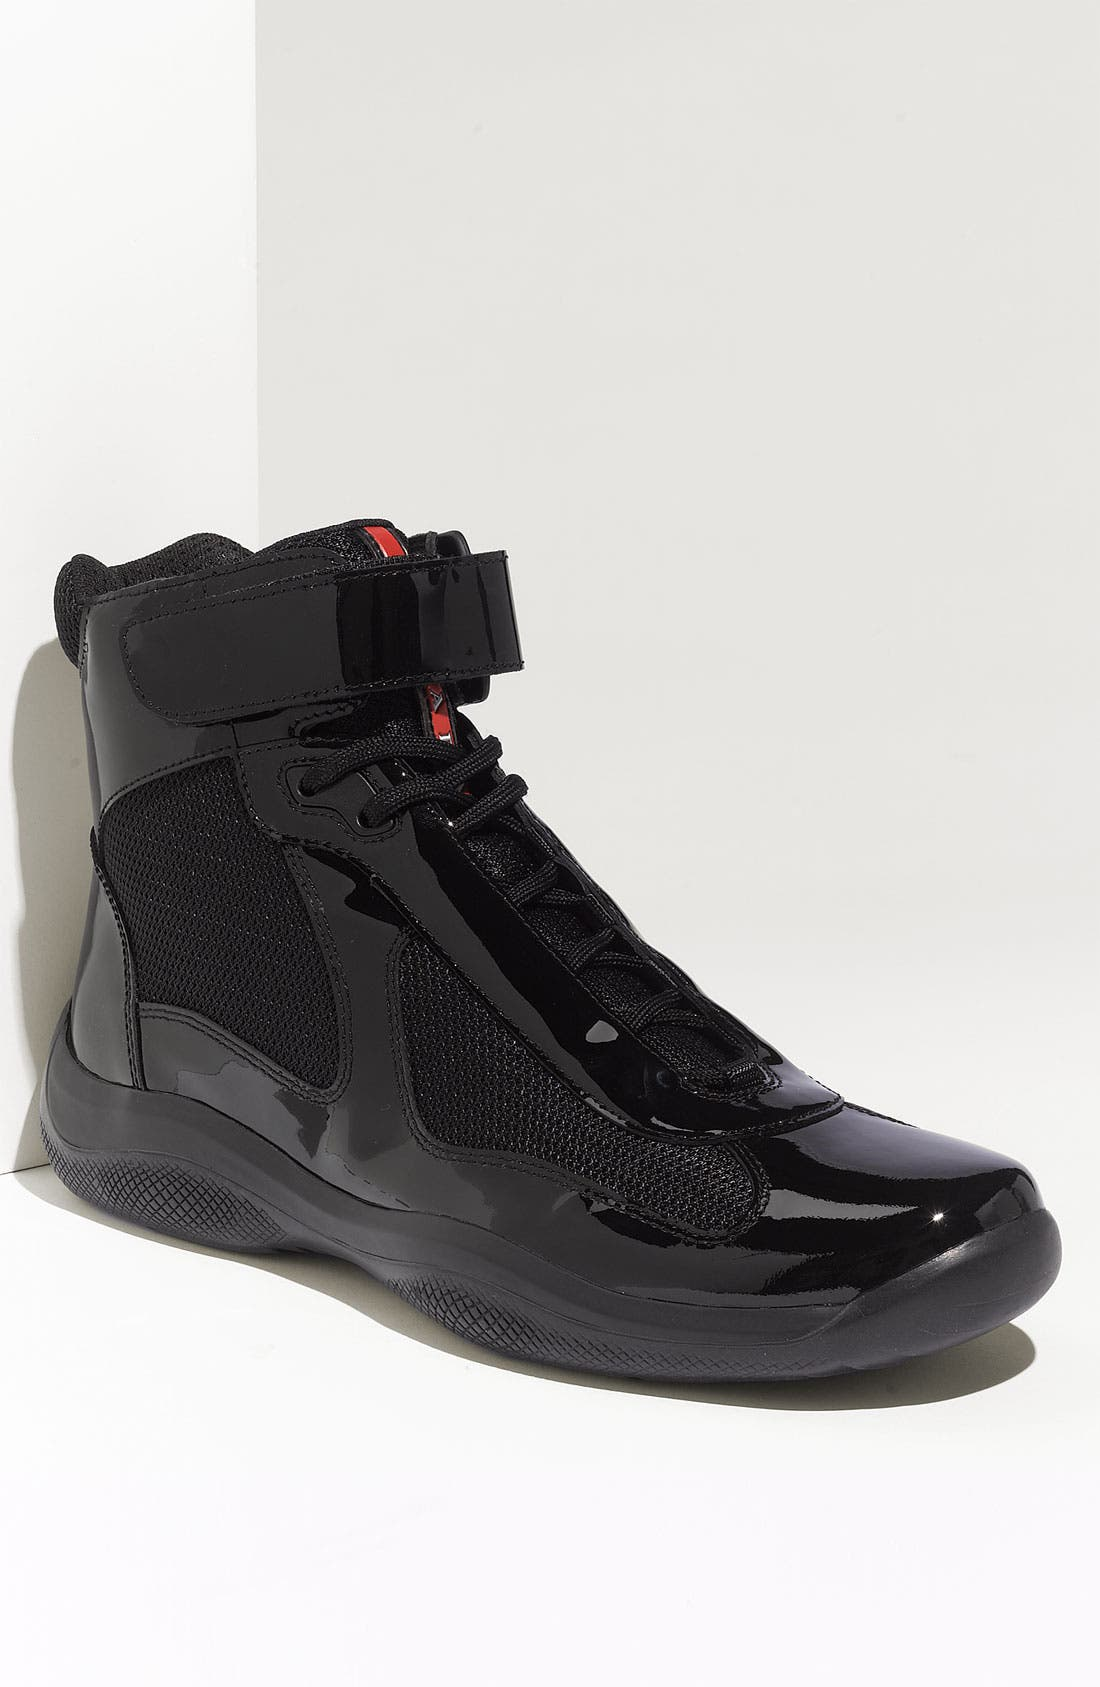 Alternate Image 1 Selected - Prada 'America's Cup' High Top Sneaker (Men)